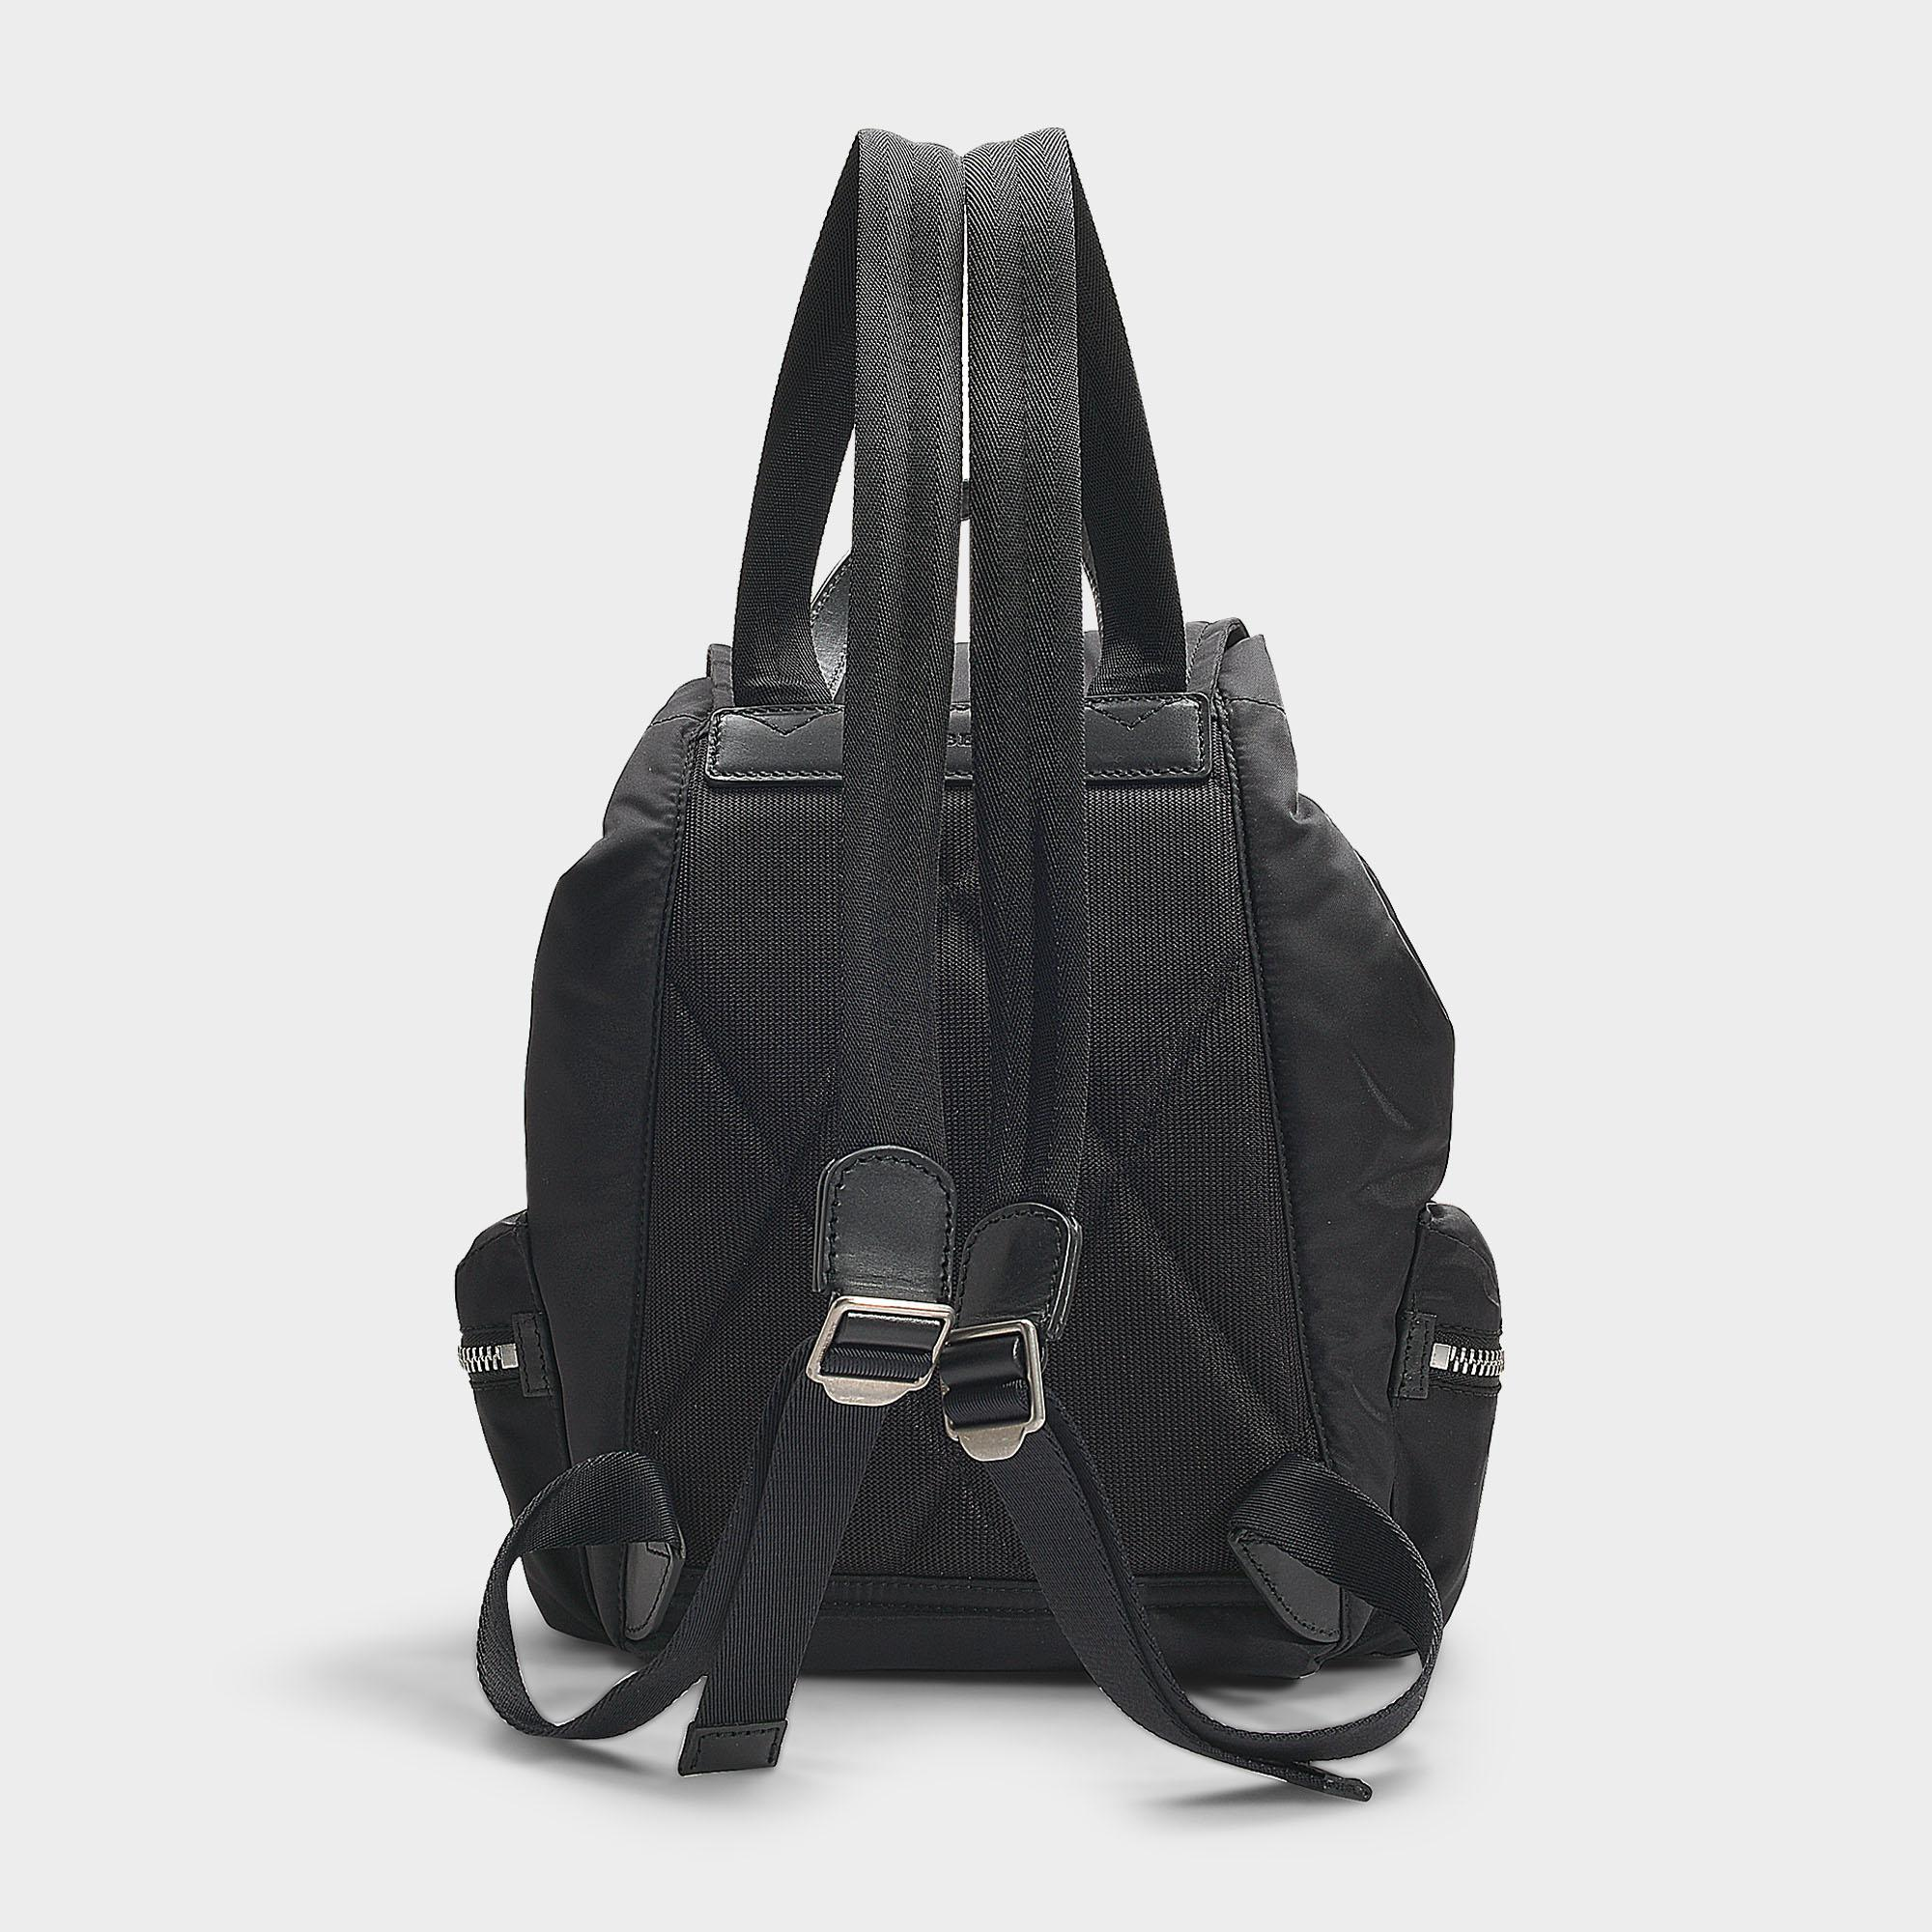 4b85cc2be59c Burberry The Medium Rucksack In Puffer Nylon And Leather in Black - Save 4%  - Lyst